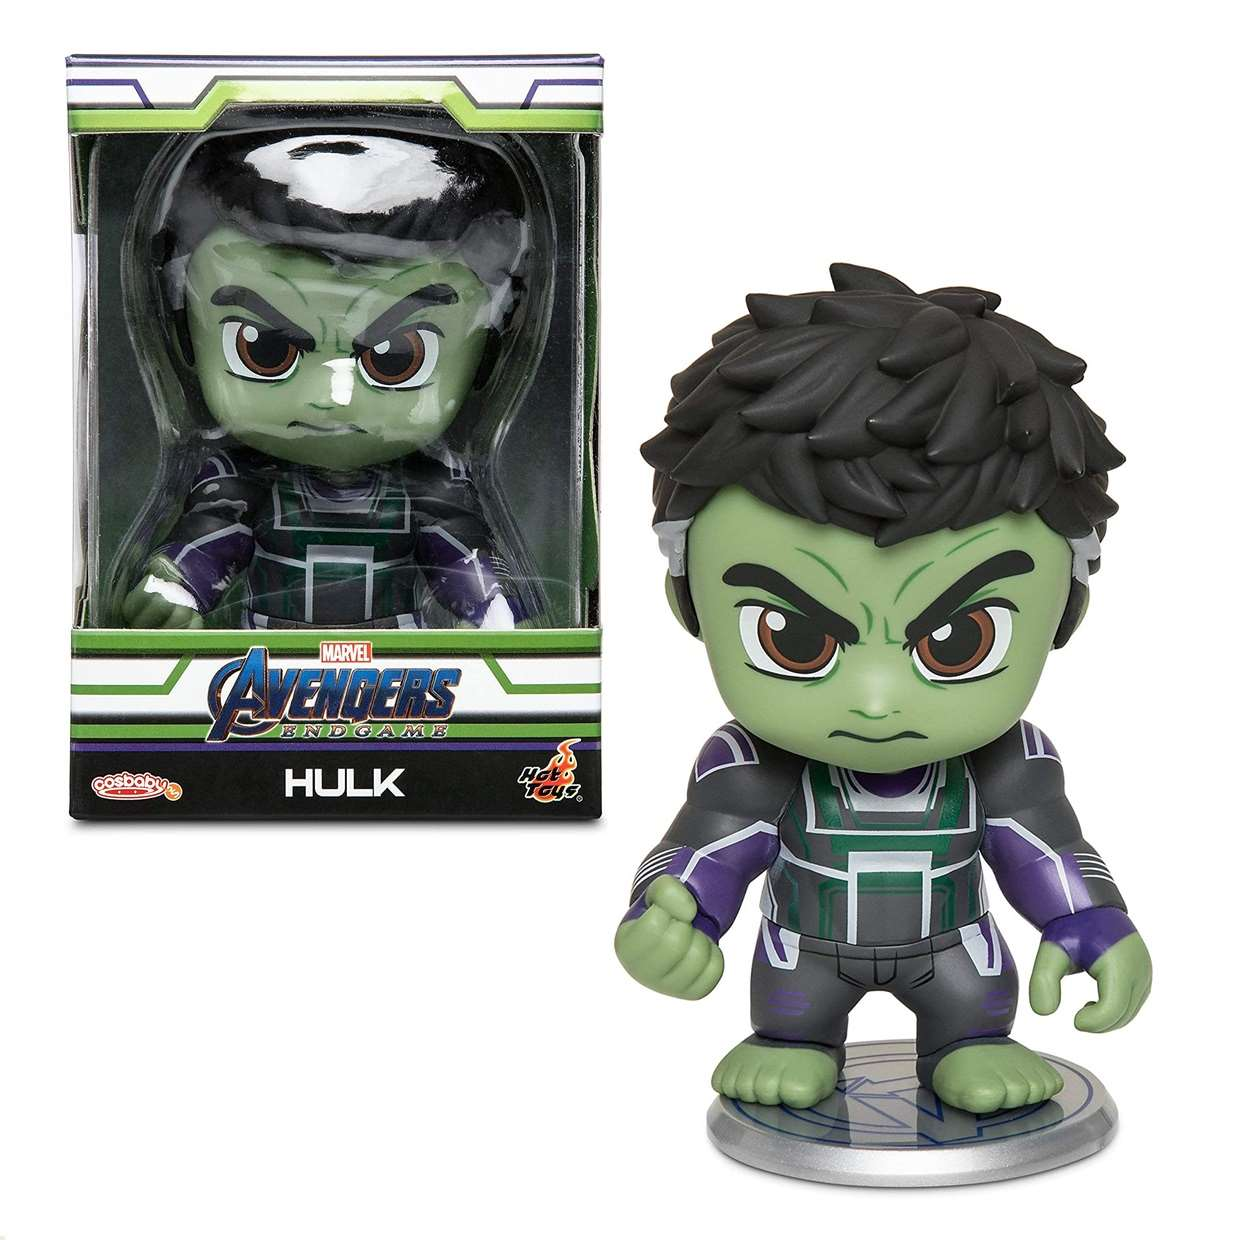 Hulk Cosb557 Marvel Avengers End Game Cosbaby Hot Toys